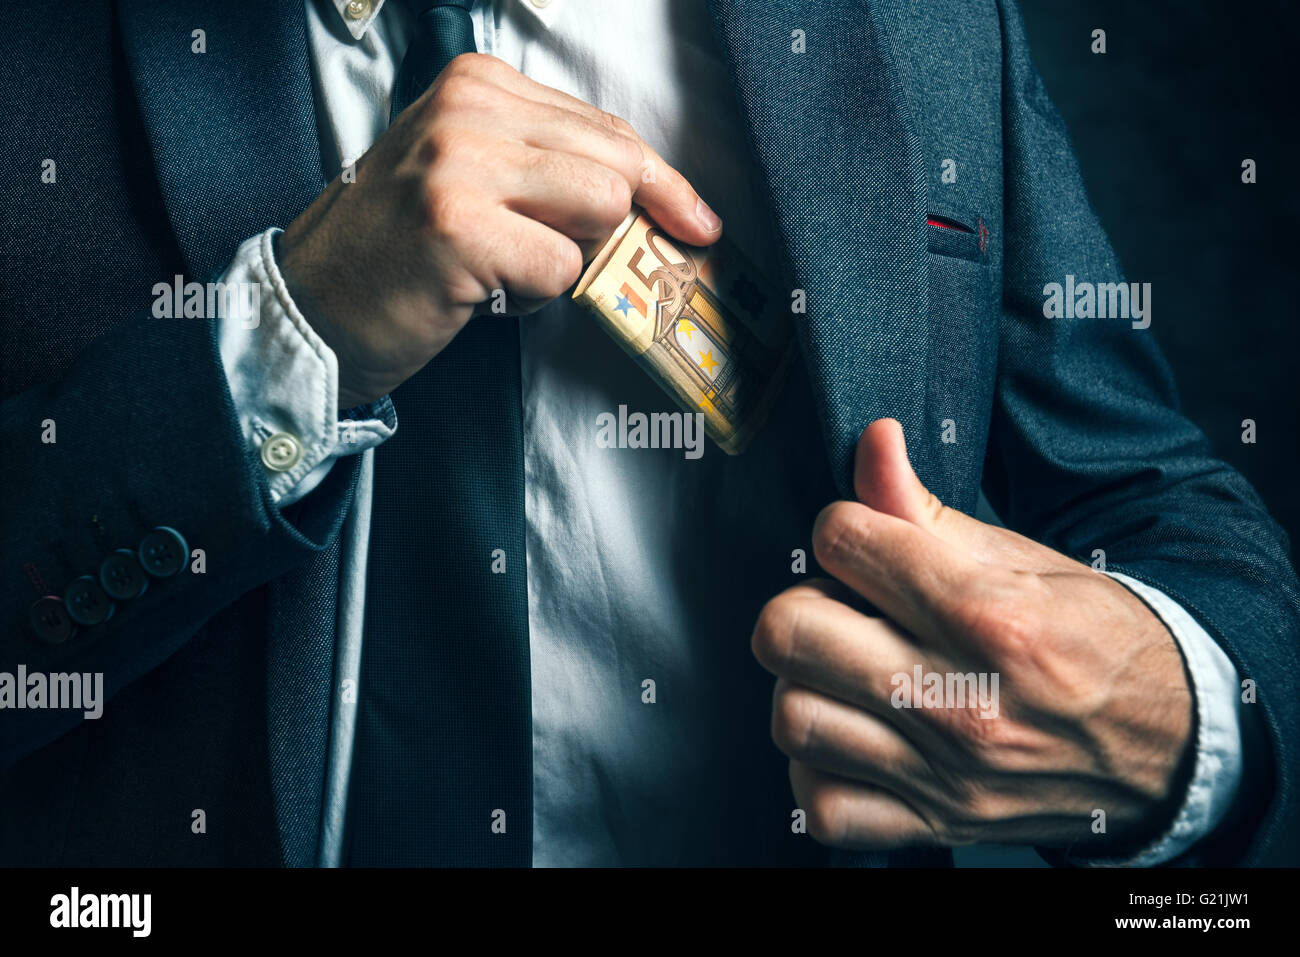 L'argent en poche, businessman putting billets en fonction de poche, pot-de-corrupution et concept. Photo Stock